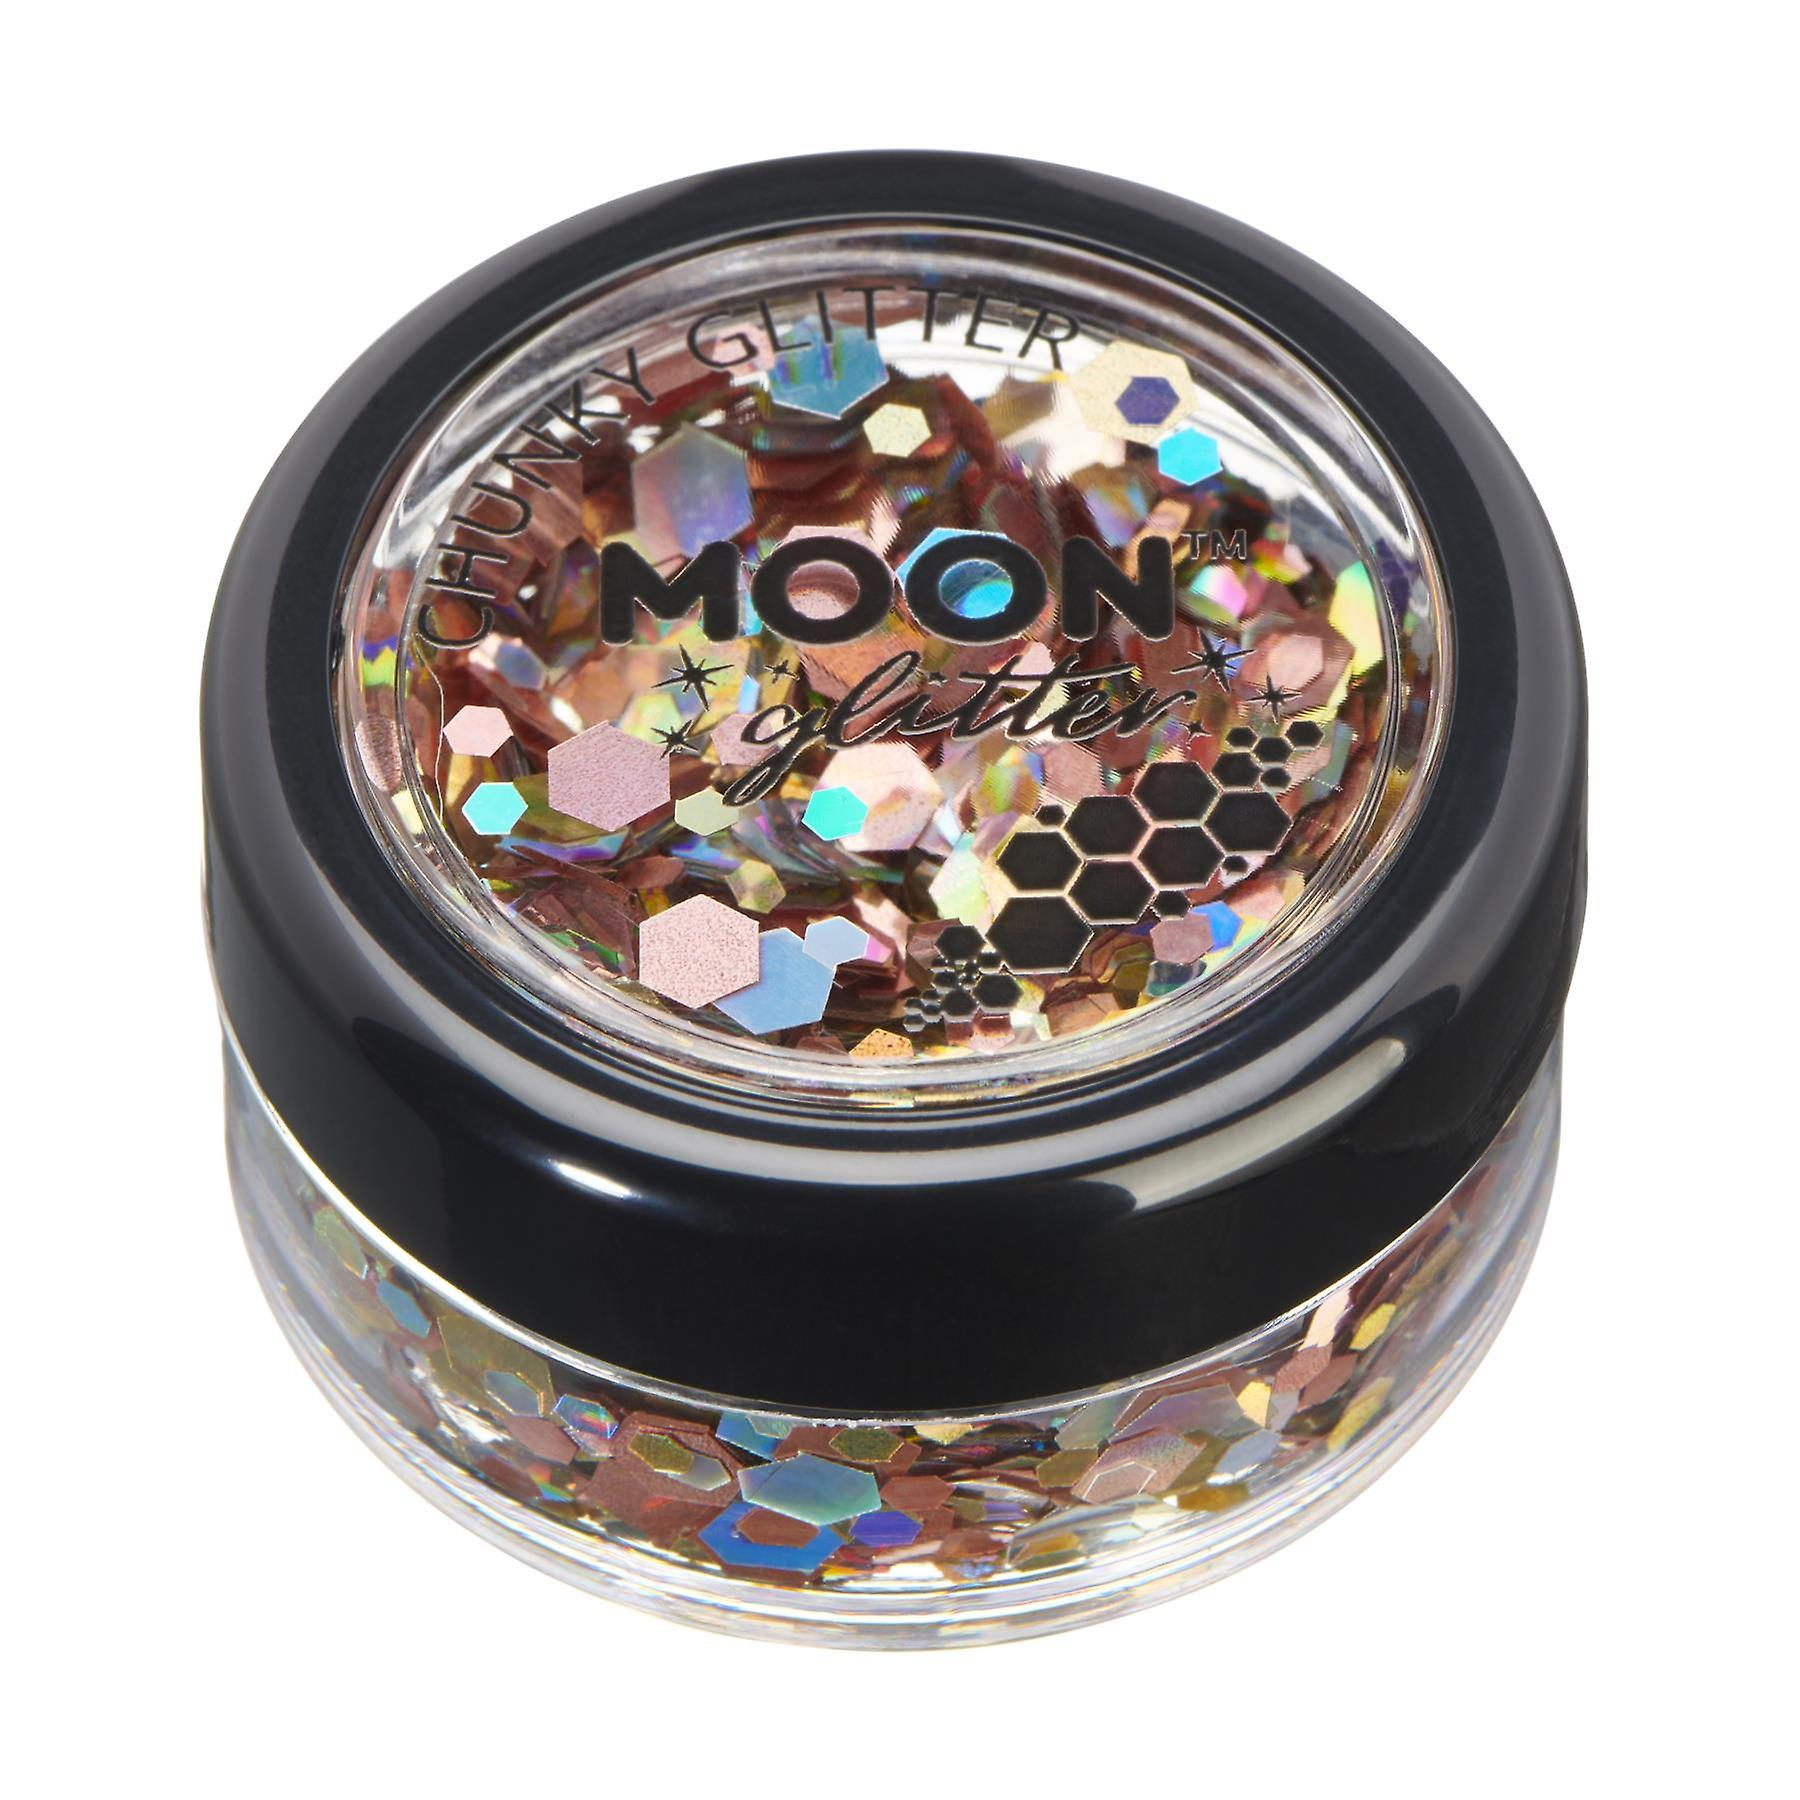 Mystic Chunky Glitter by Moon Glitter – 100% Cosmetic Glitter for Face, Body, Nails, Hair and Lips - 3g - Prosecco